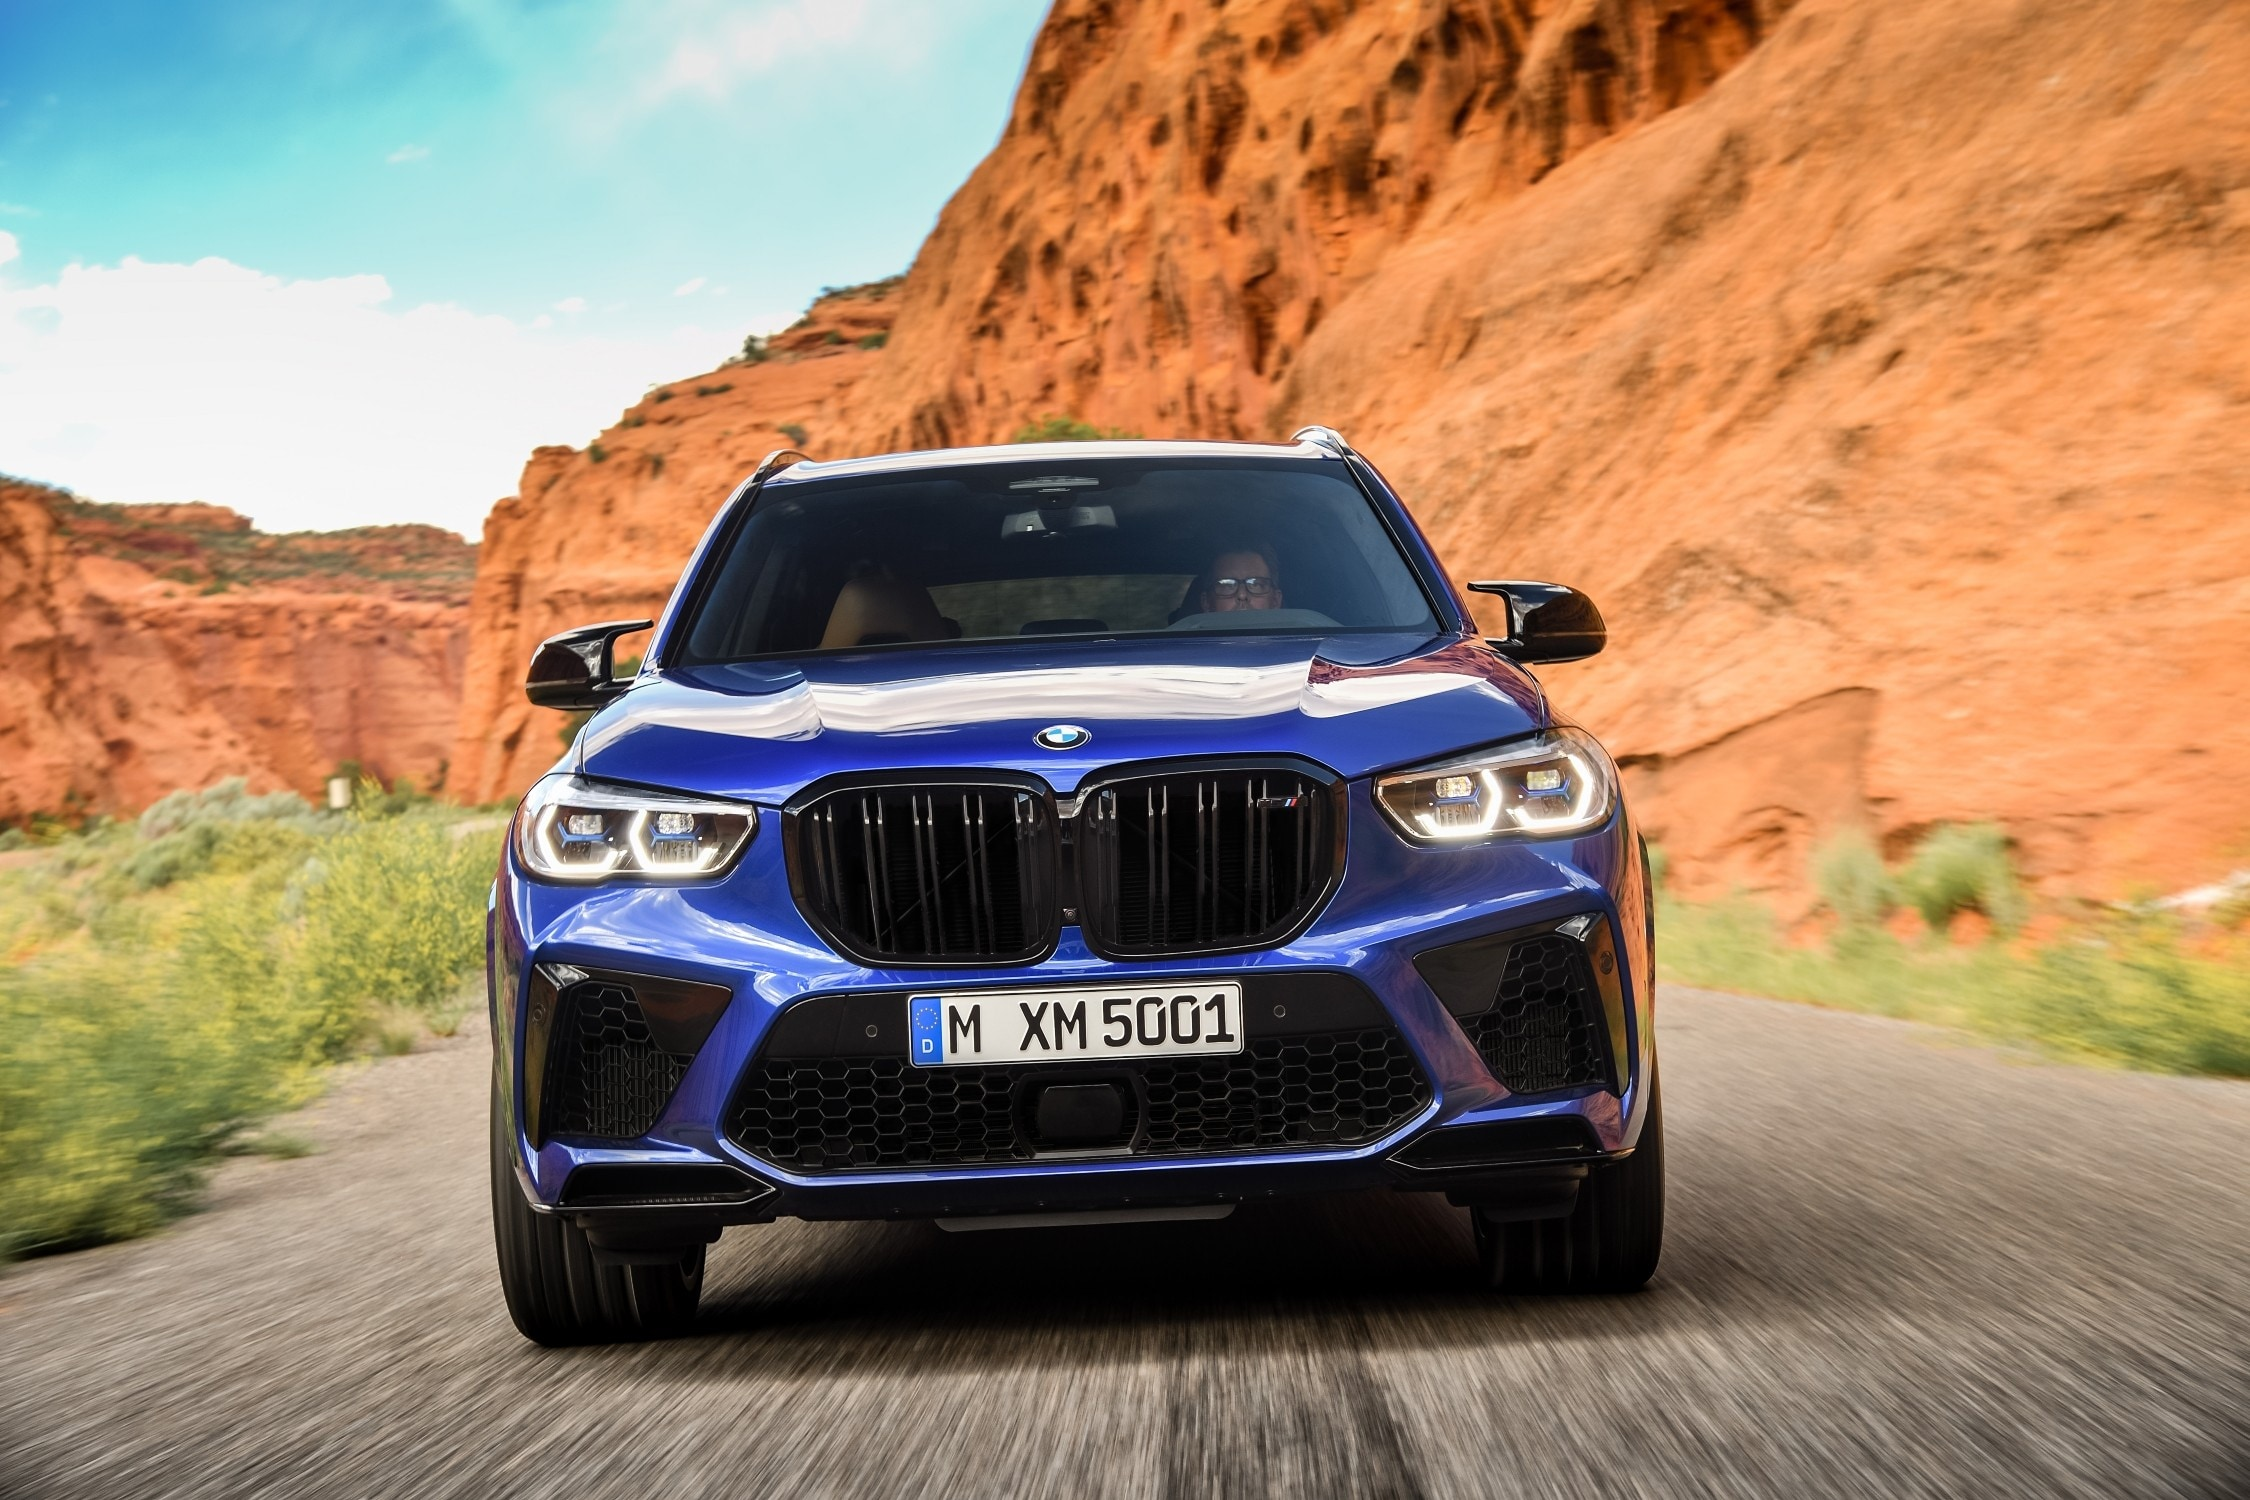 The X5 M Competition will have a dominant road presence thanks to its large front bumper air intake openings which will feed additional air to the coolers. The Sports Activity Vehicle (SAV) will also feature the BMW Laserlight which has a range of around 500 metres.